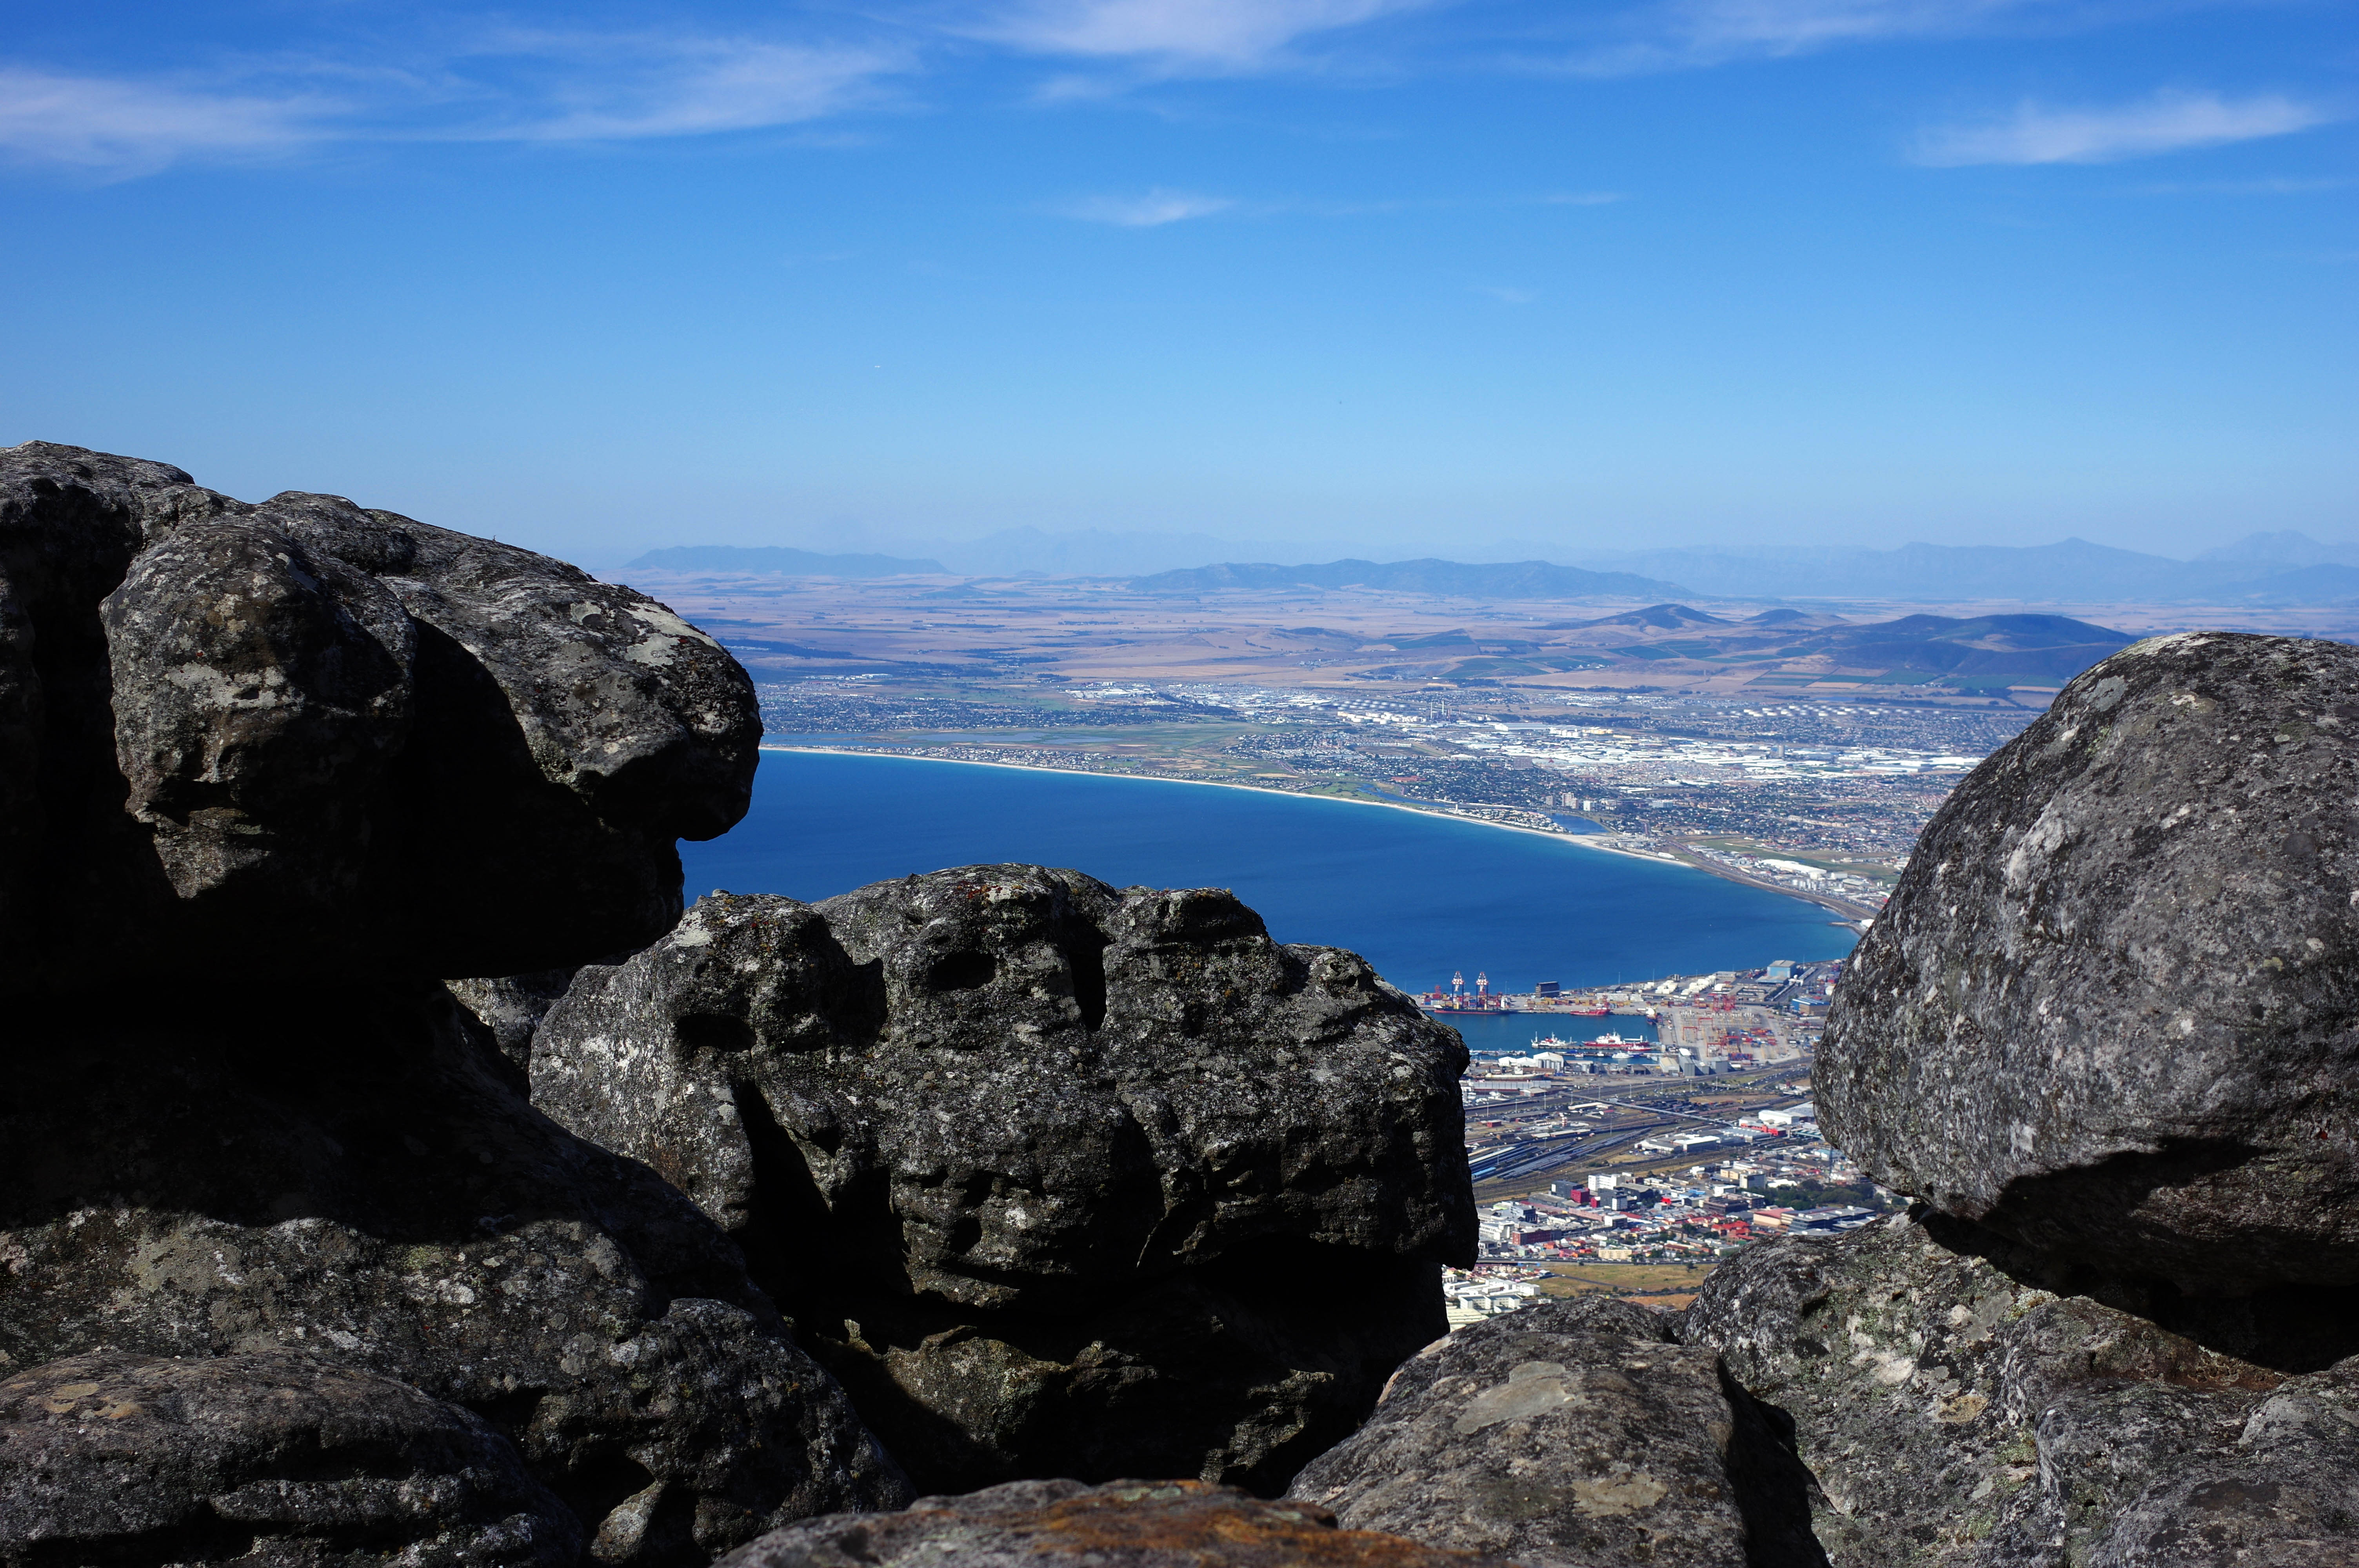 171122_CT_Table mountain01